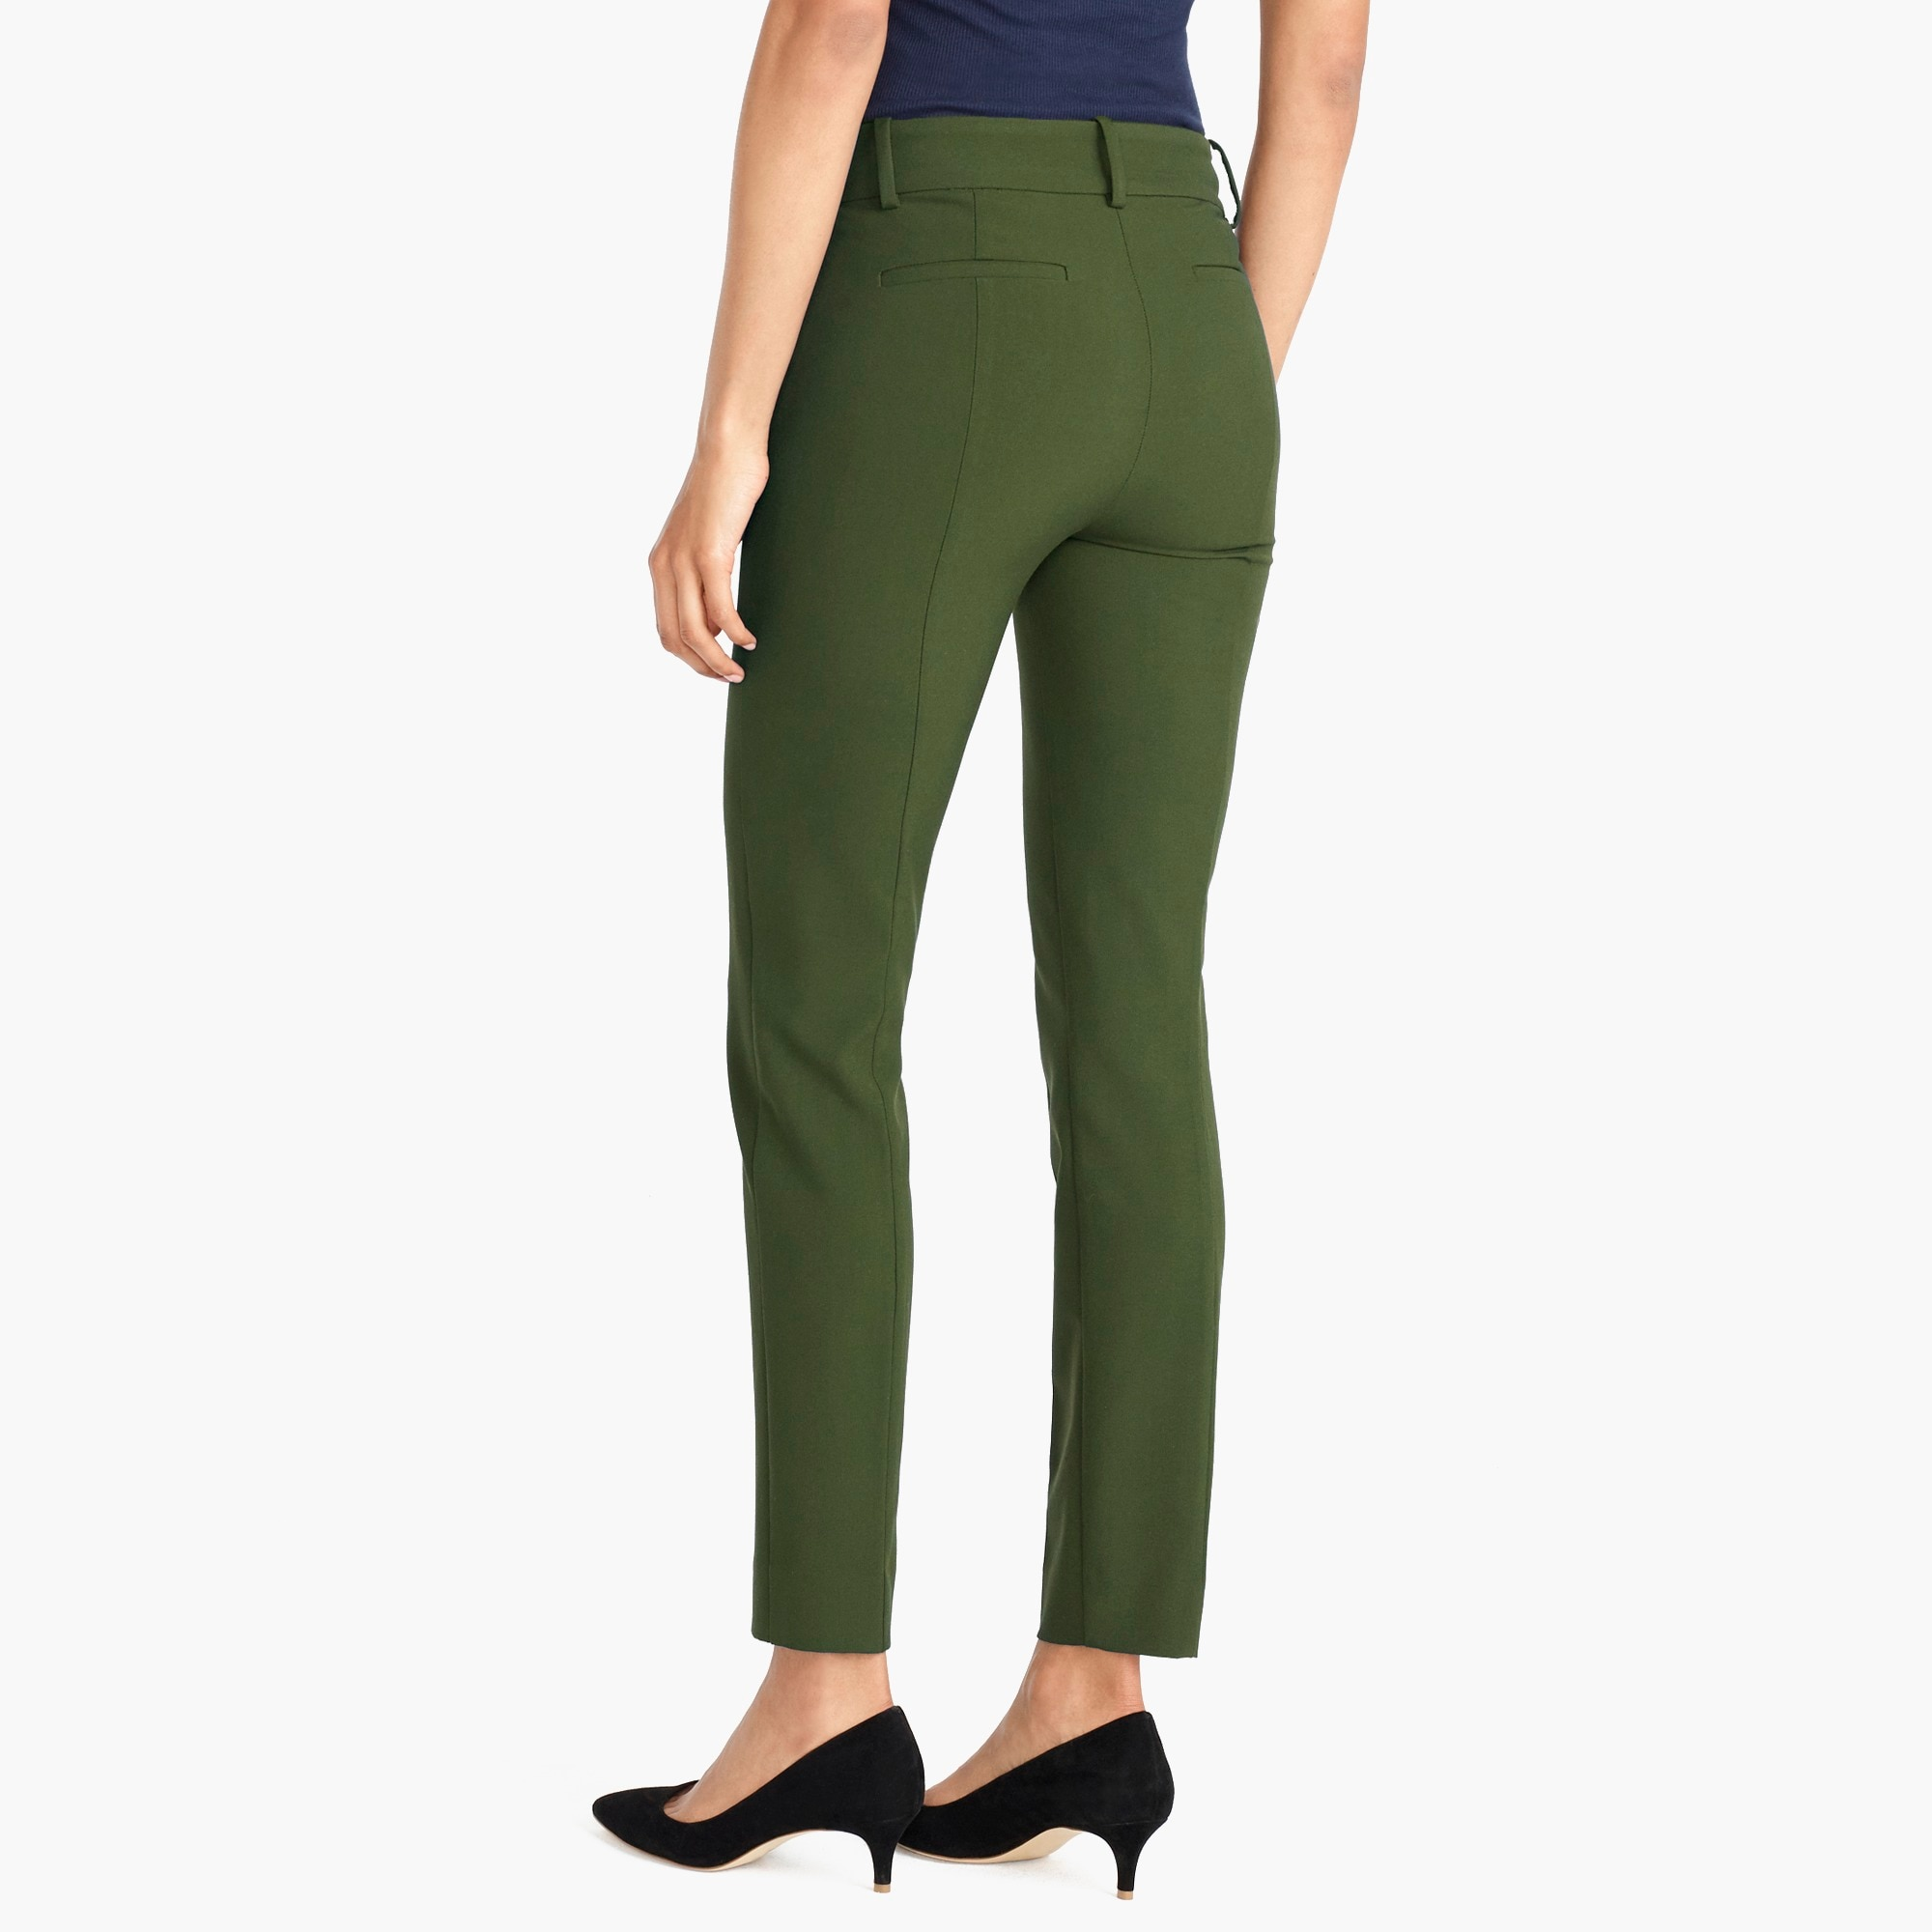 Image 3 for Ruby pant